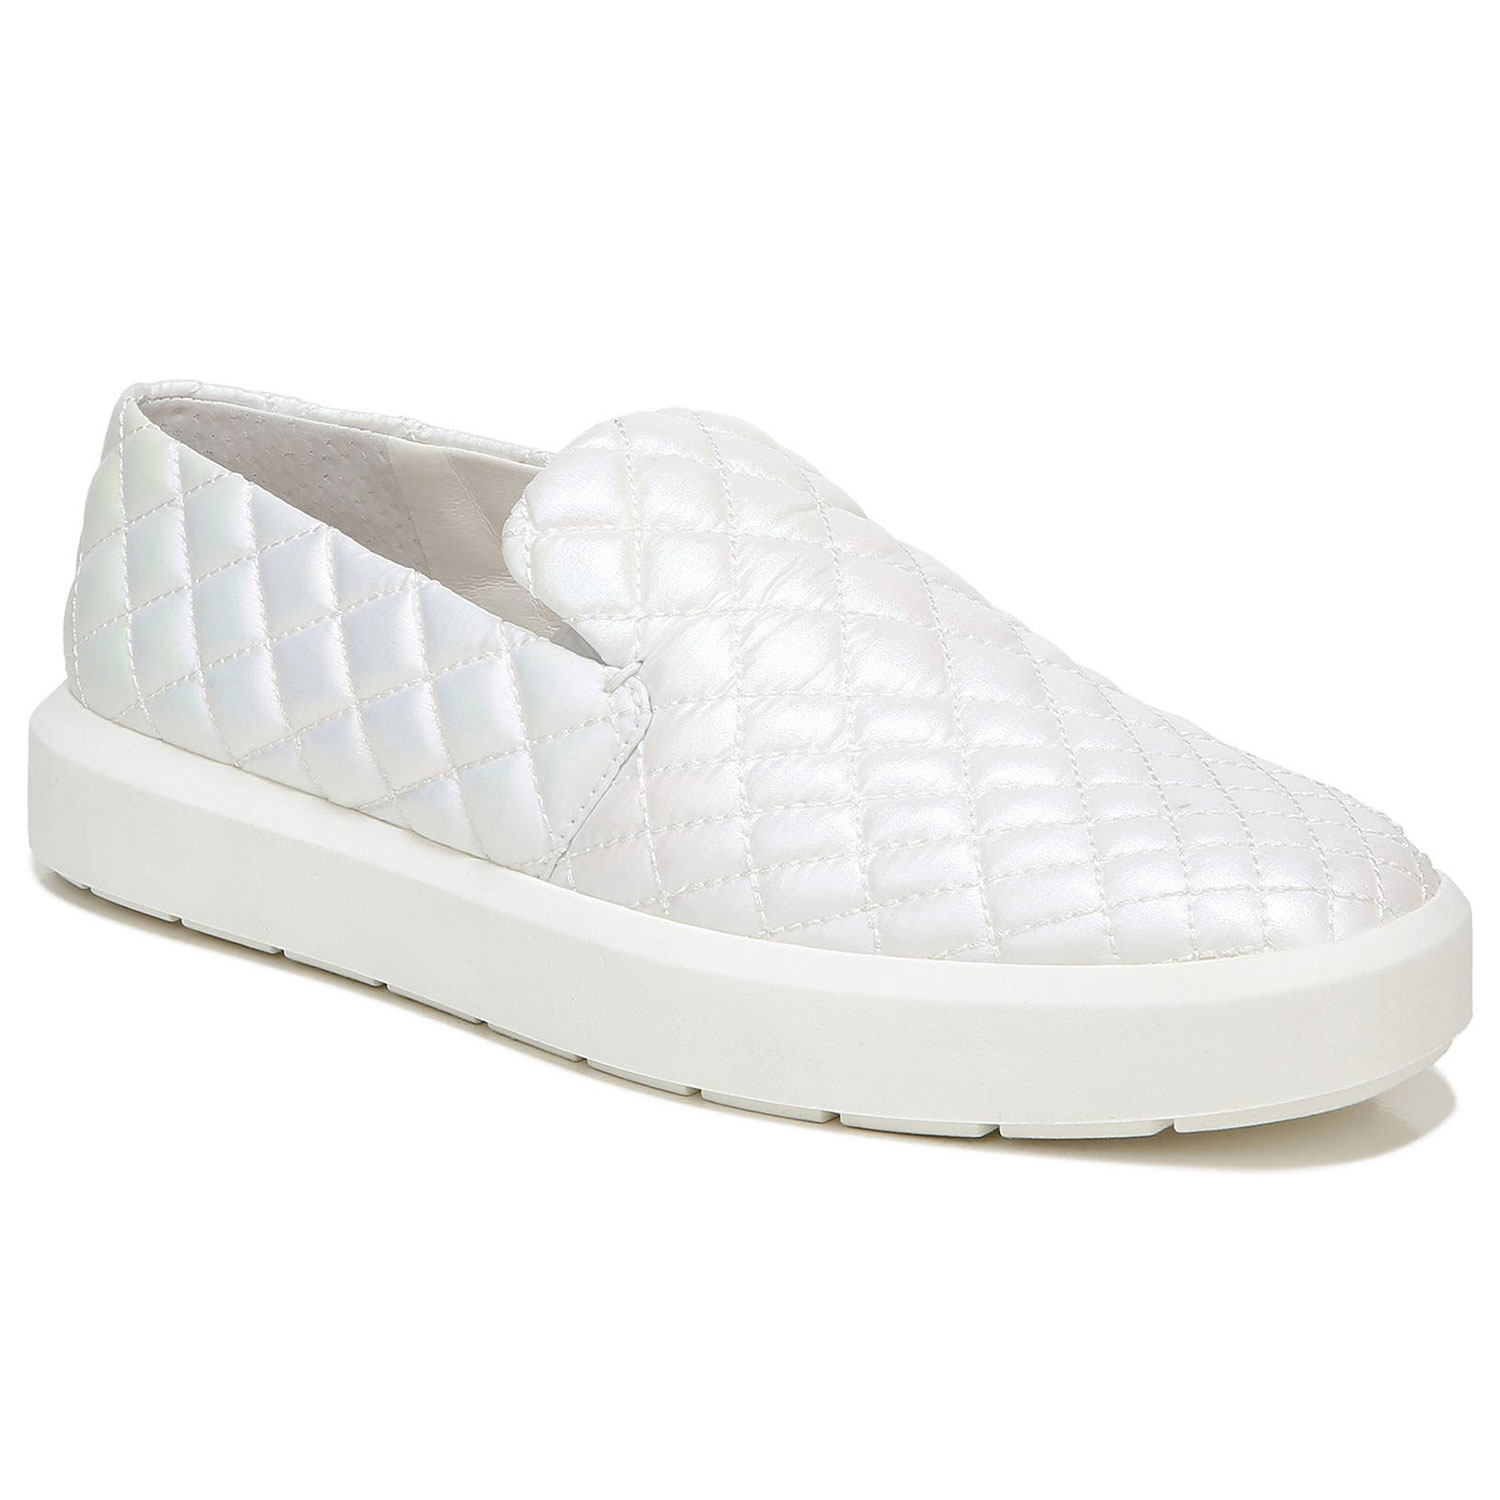 Nordstrom White Sneakers 2021